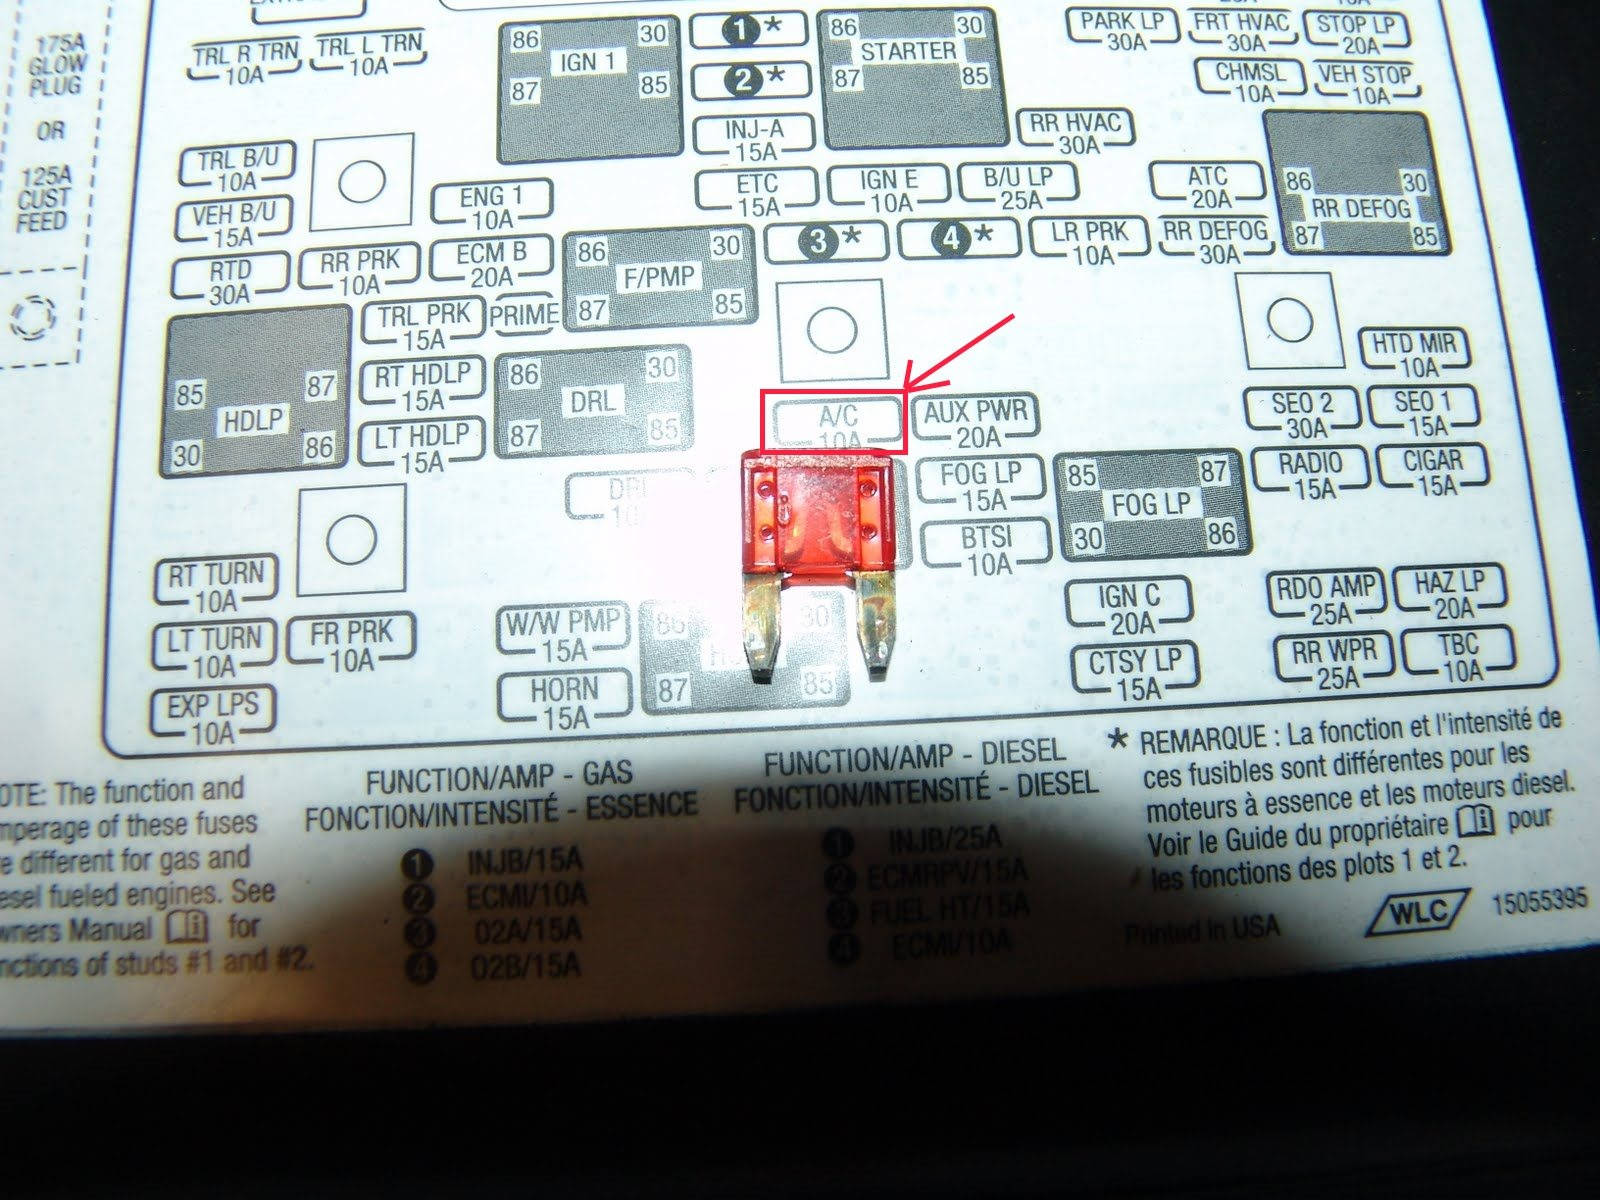 2003 chevrolet tahoe fuse box diagram trusted wiring diagrams u2022 rh sivamuni com 2004 chevy tahoe fuse box diagram